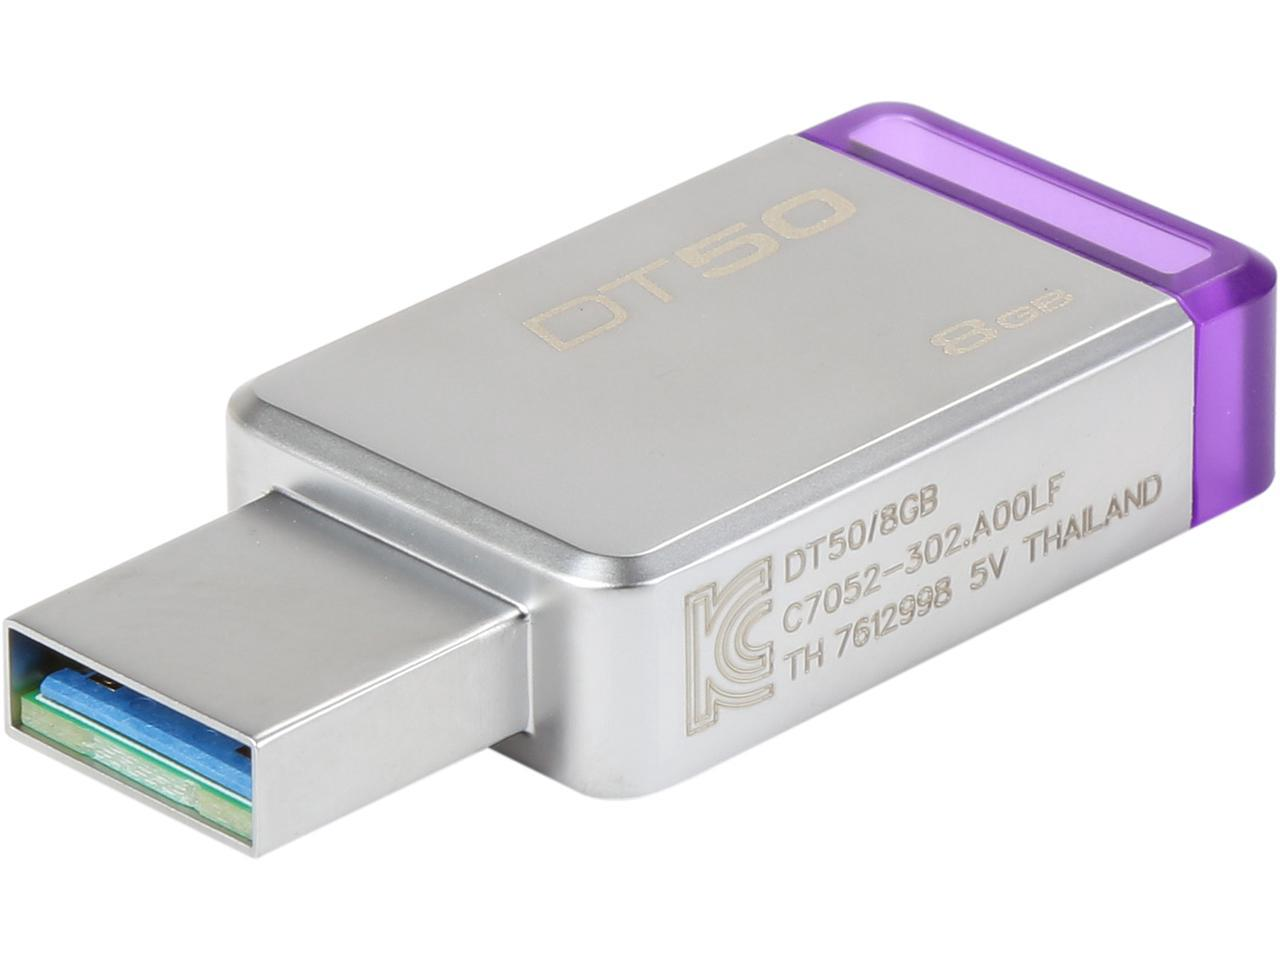 Kingston 8GB DataTraveler 50 8G DT50 USB 3.1 Gen 1 USB 3.0 30MB/s Flash Pen Thumb Drive DT50/8GB 1